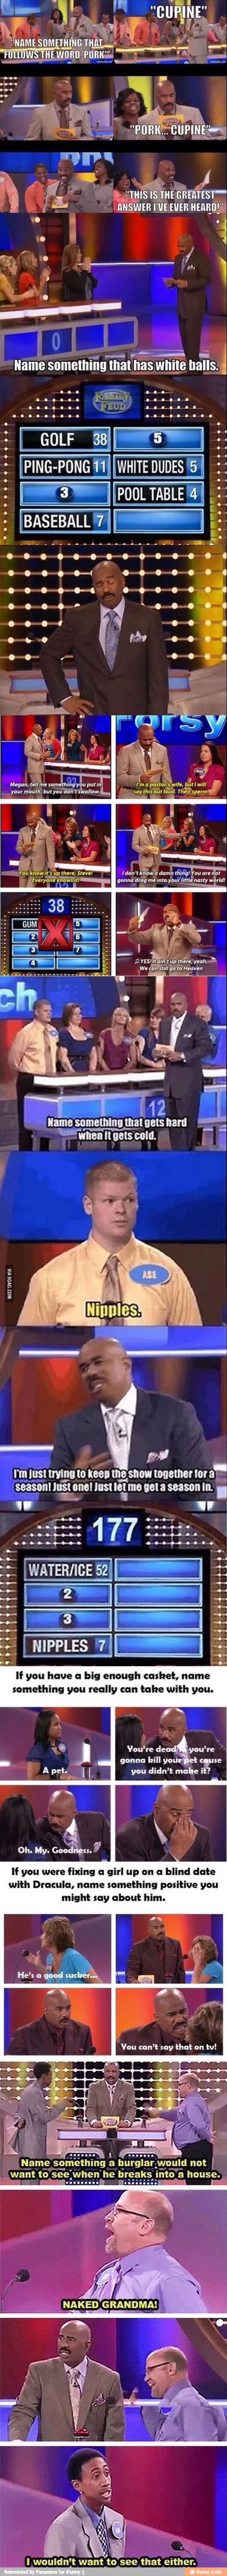 Steve Harvey is the best